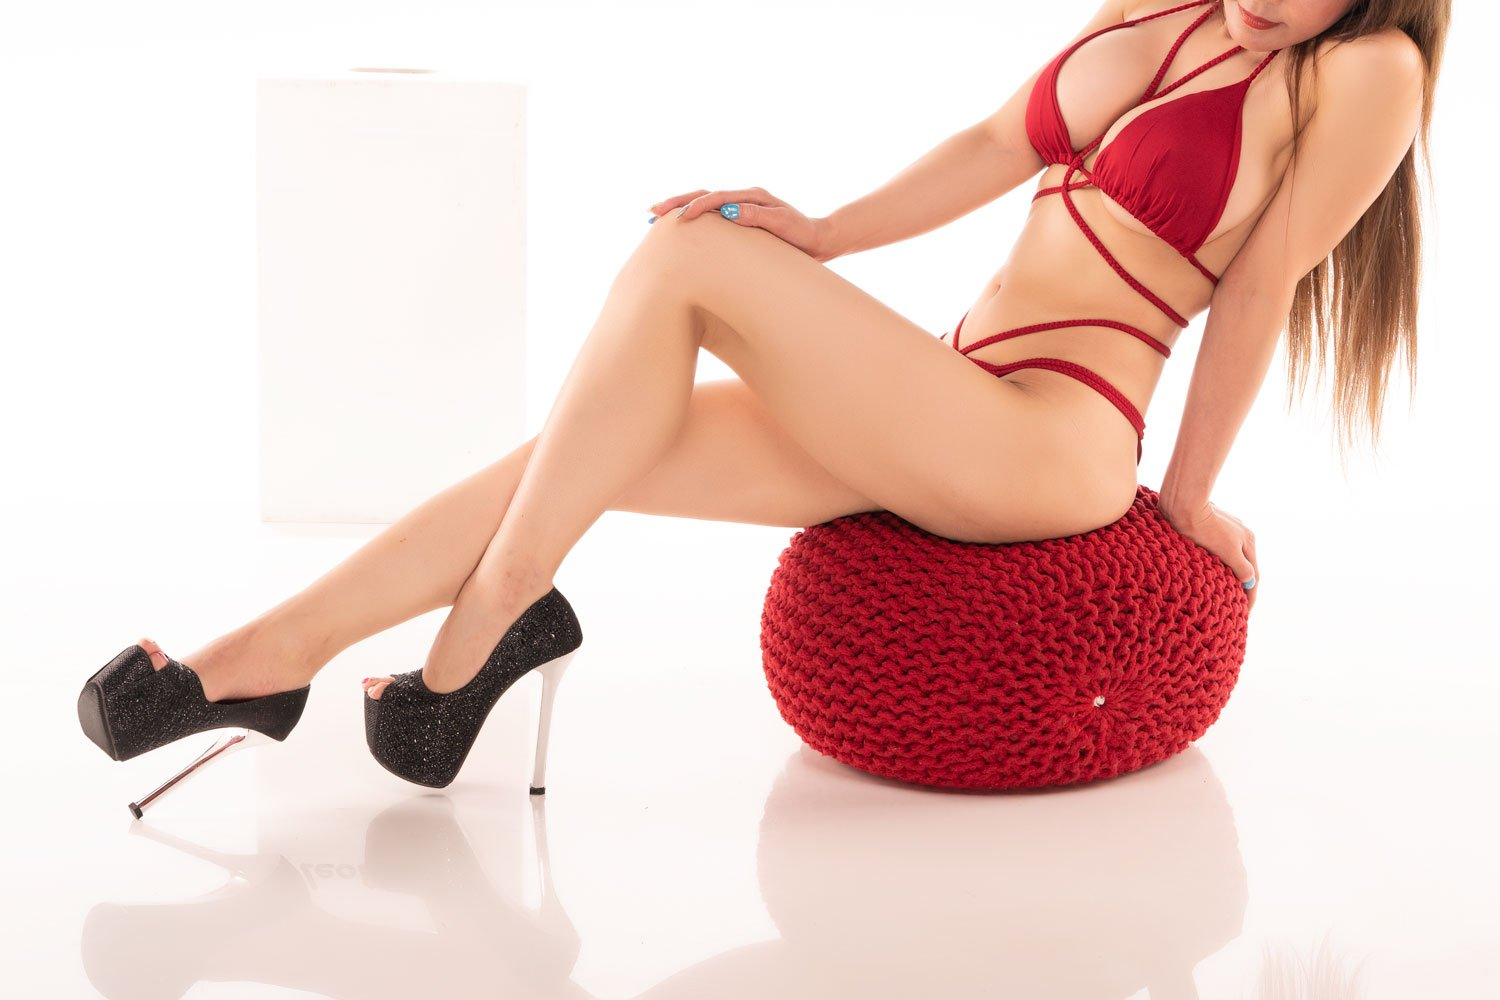 Asian escorts vancouver escorts where to find ecg global partners